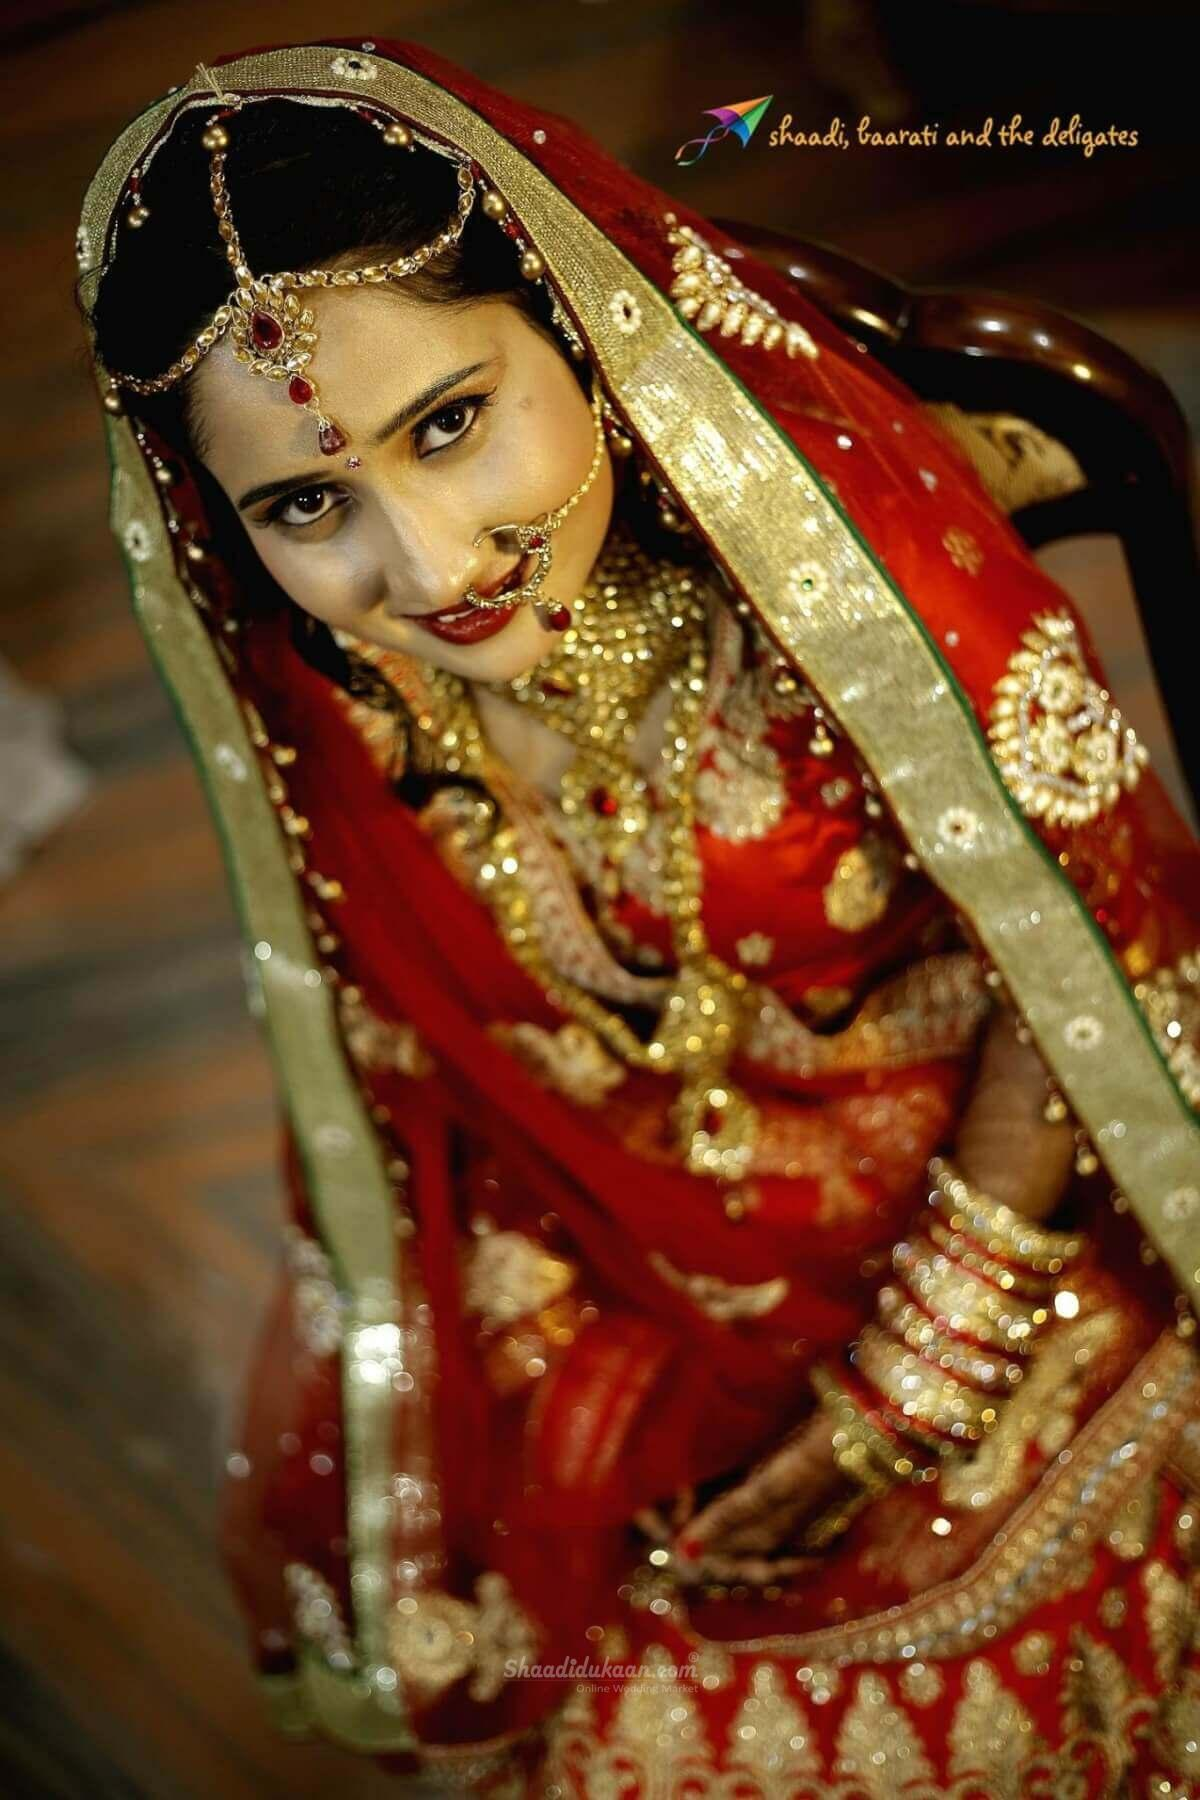 SHAADI BAARATI & THE DELIGATES